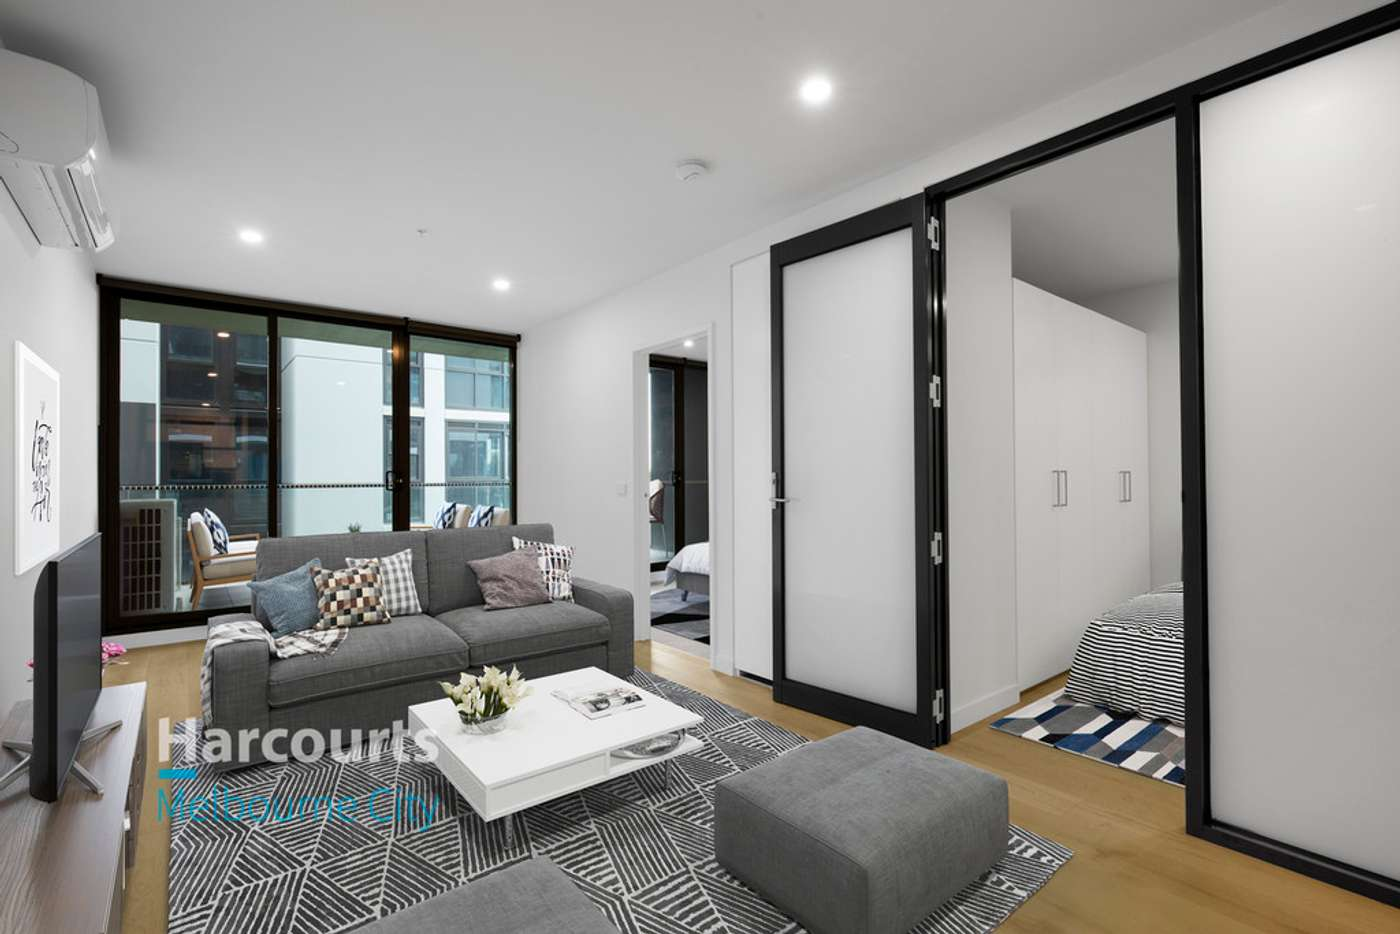 Main view of Homely apartment listing, 208/3 Olive York Way, Brunswick West VIC 3055